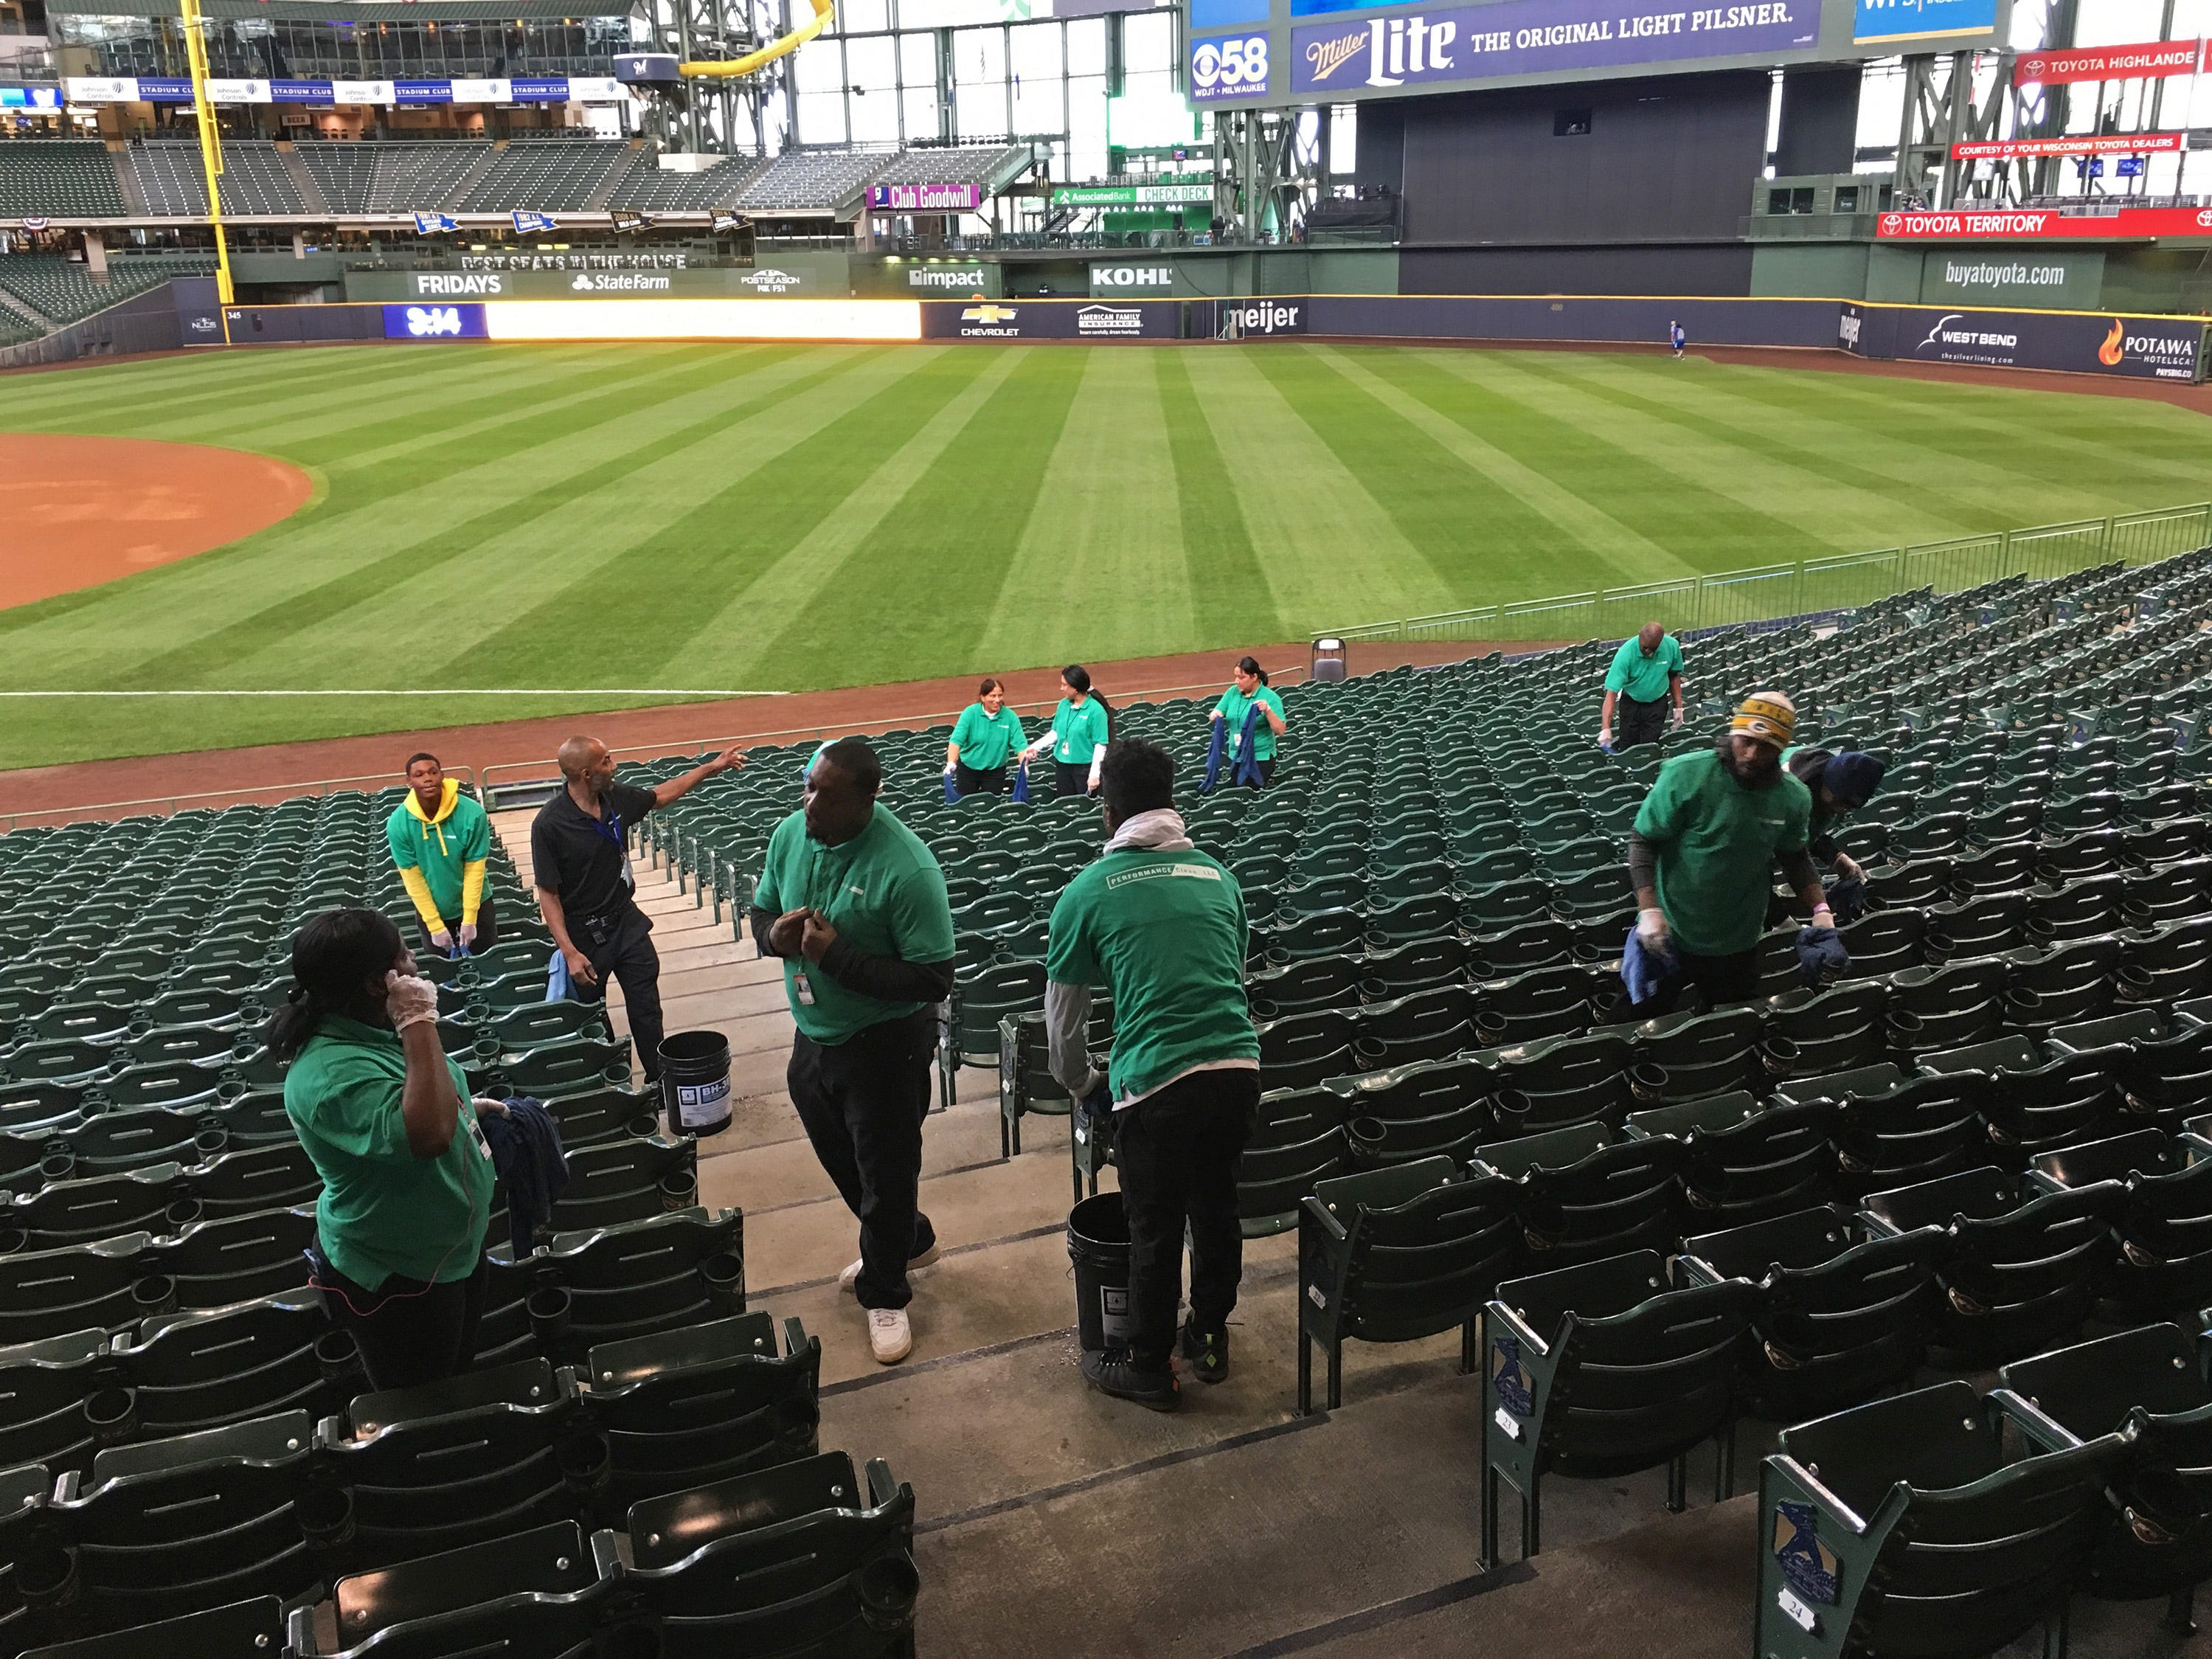 Stadium staff clean the seats before the fans arrive for NLCS Game 1 at Miller Park.